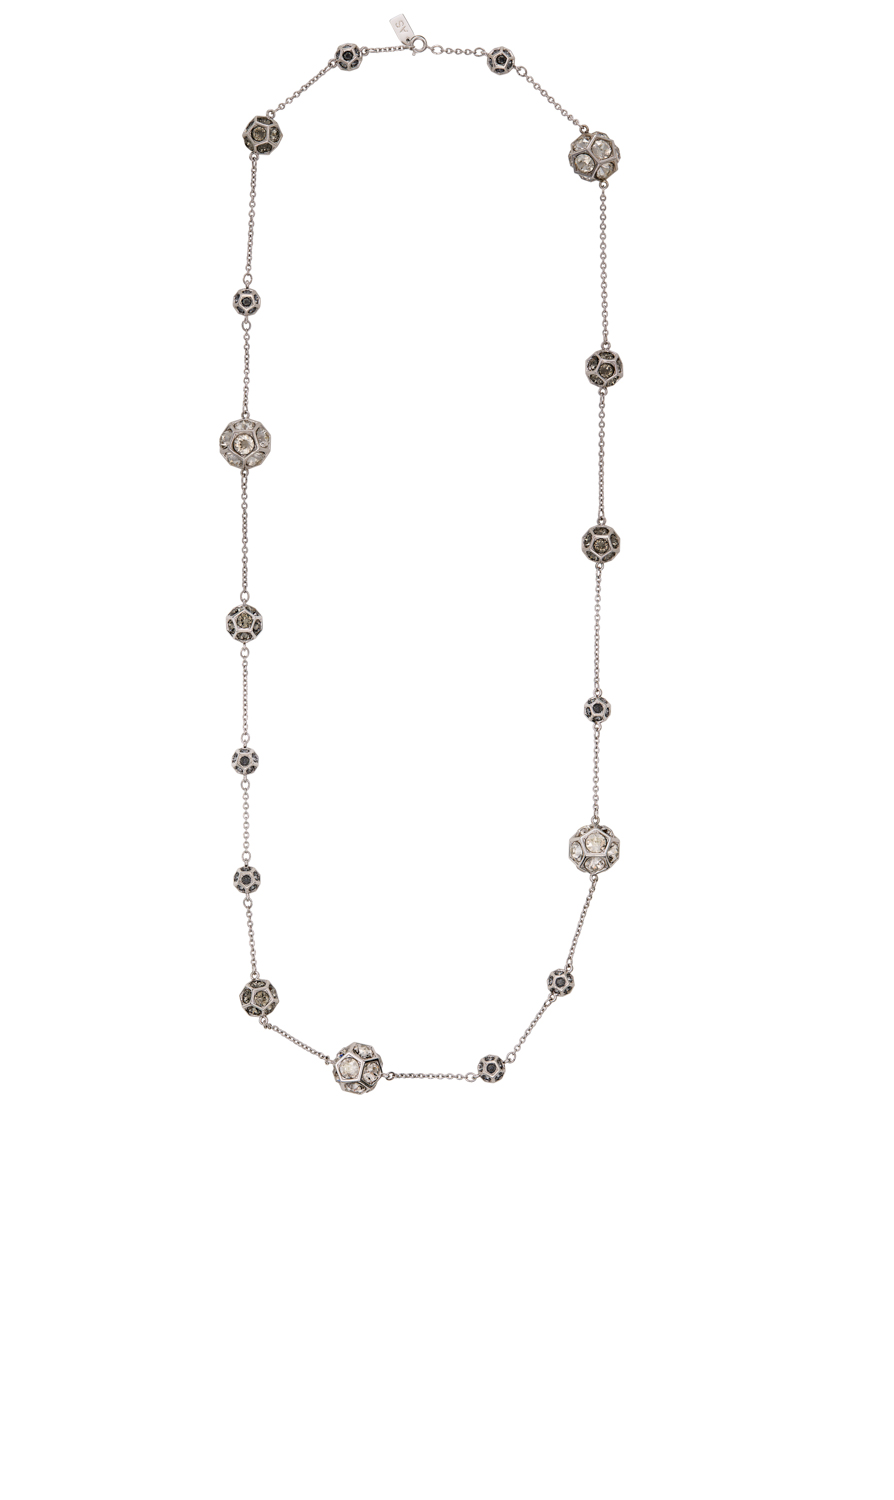 YE MINGZE-SINGLE LOOP NECKLACE-top-base_Stacked copy (2)2016-04-15 (2).jpg